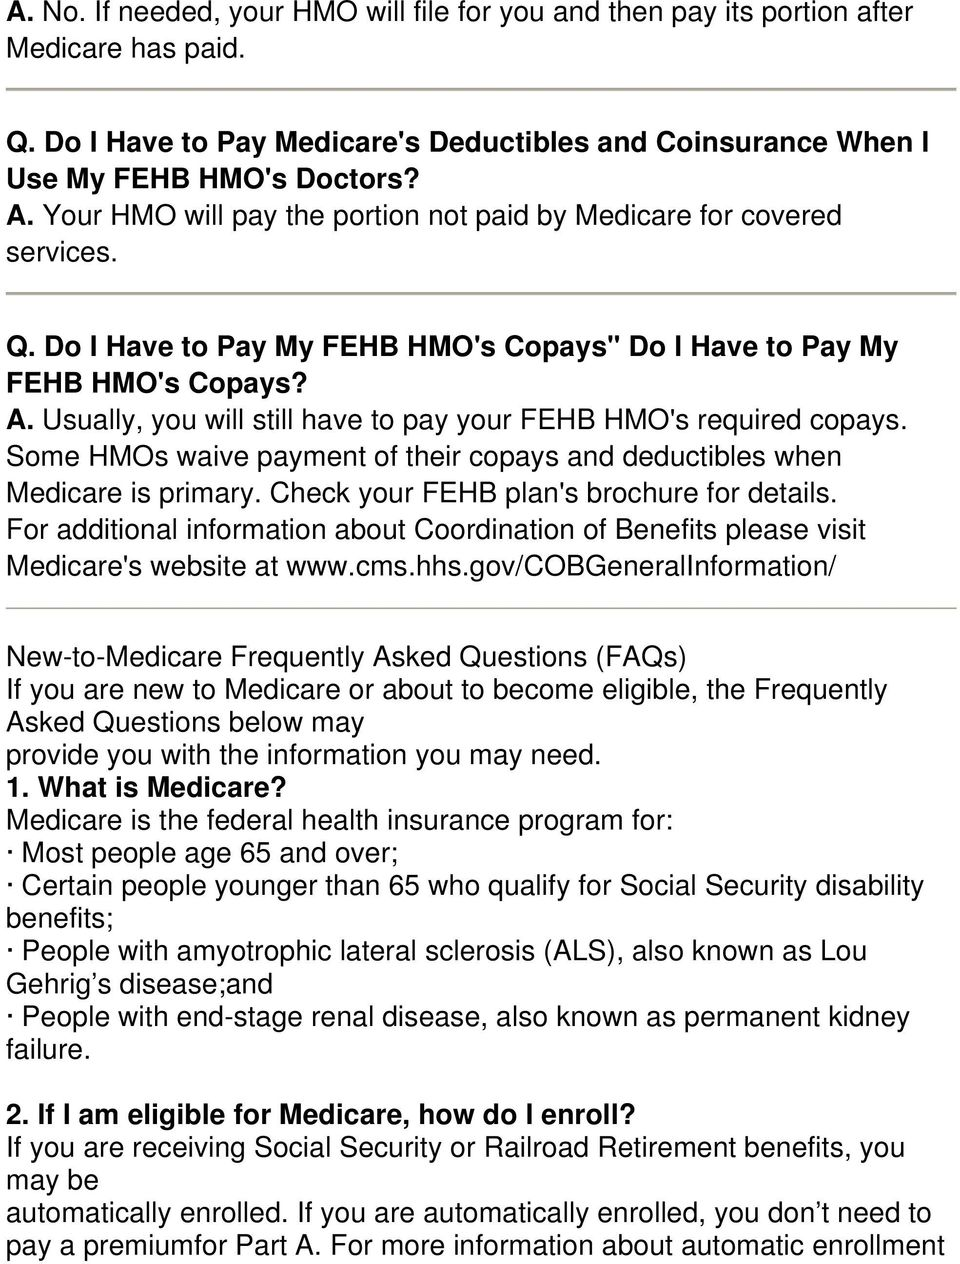 Usually, you will still have to pay your FEHB HMO's required copays. Some HMOs waive payment of their copays and deductibles when Medicare is primary. Check your FEHB plan's brochure for details.